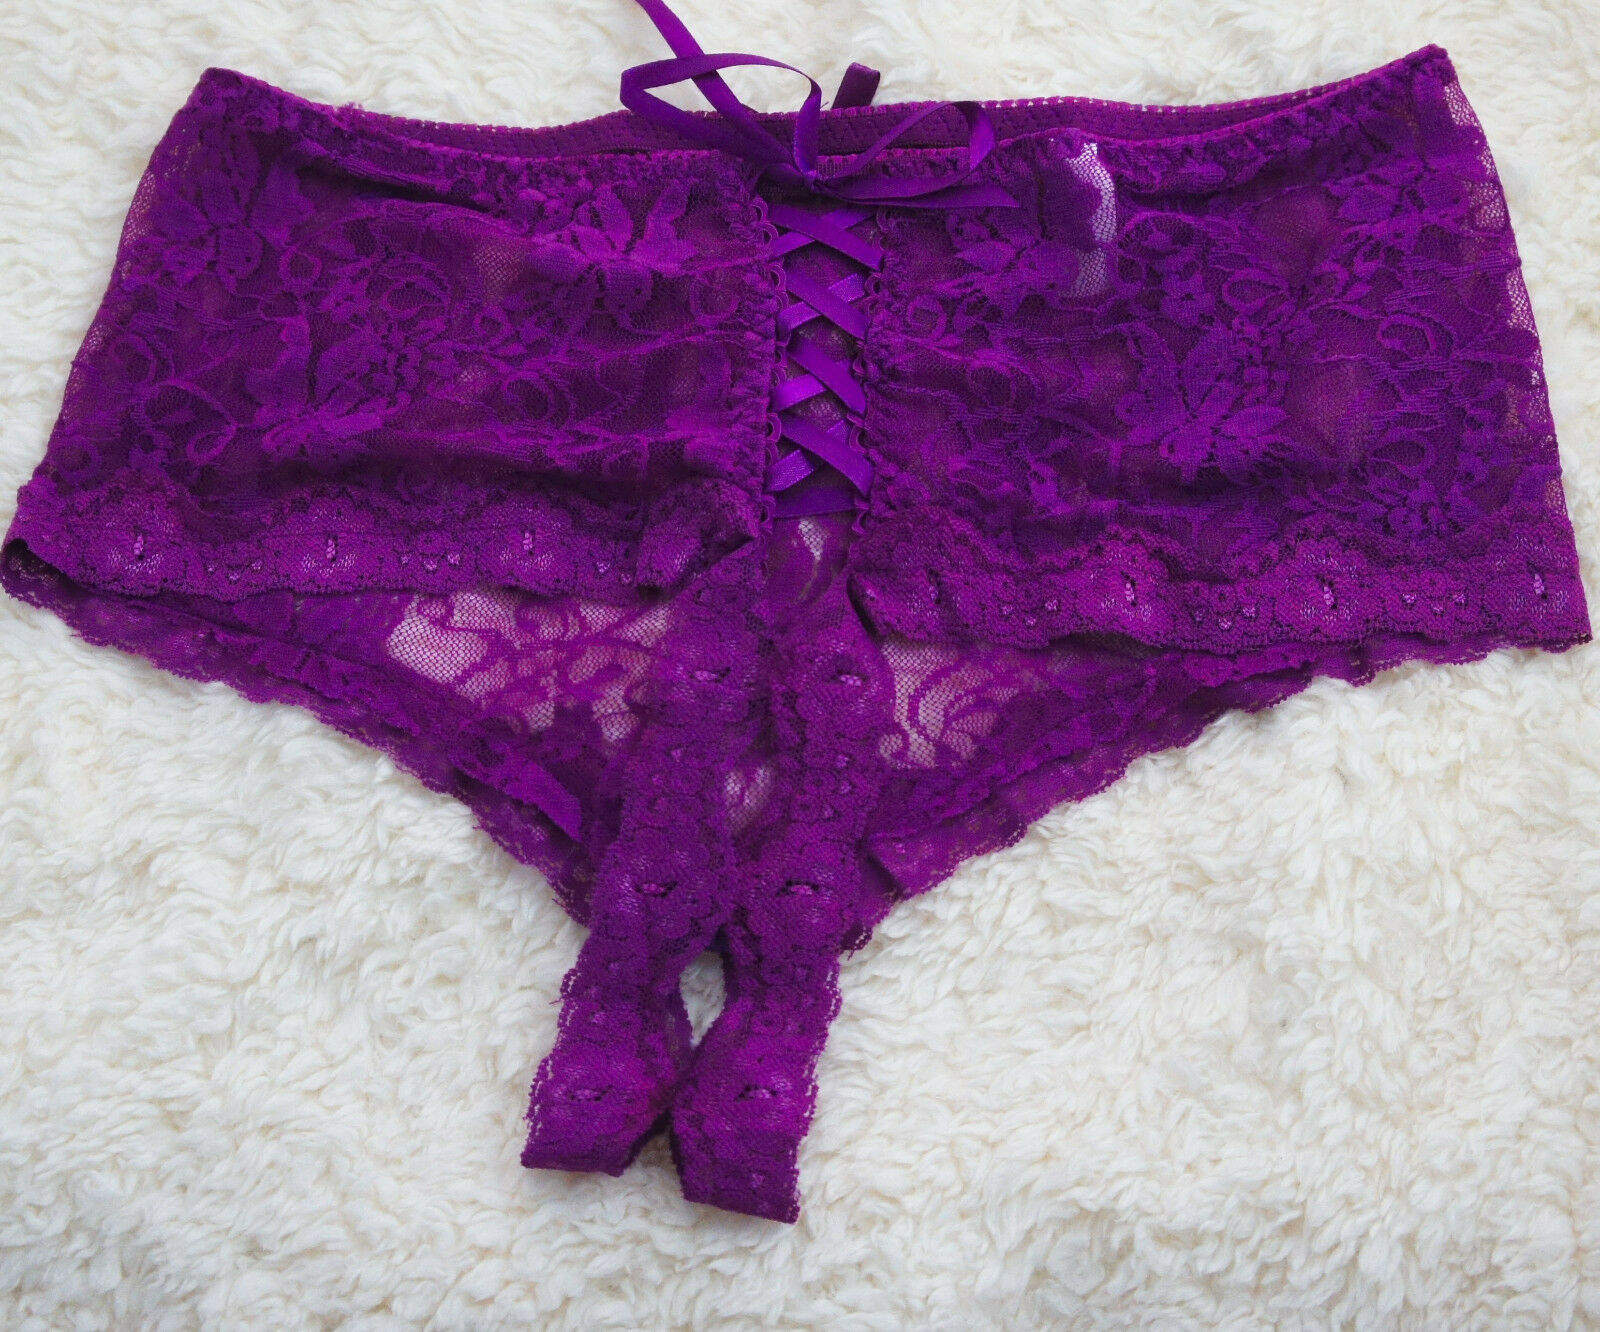 Lily Of France thong 6//M 2143631 pink womens panty NEW